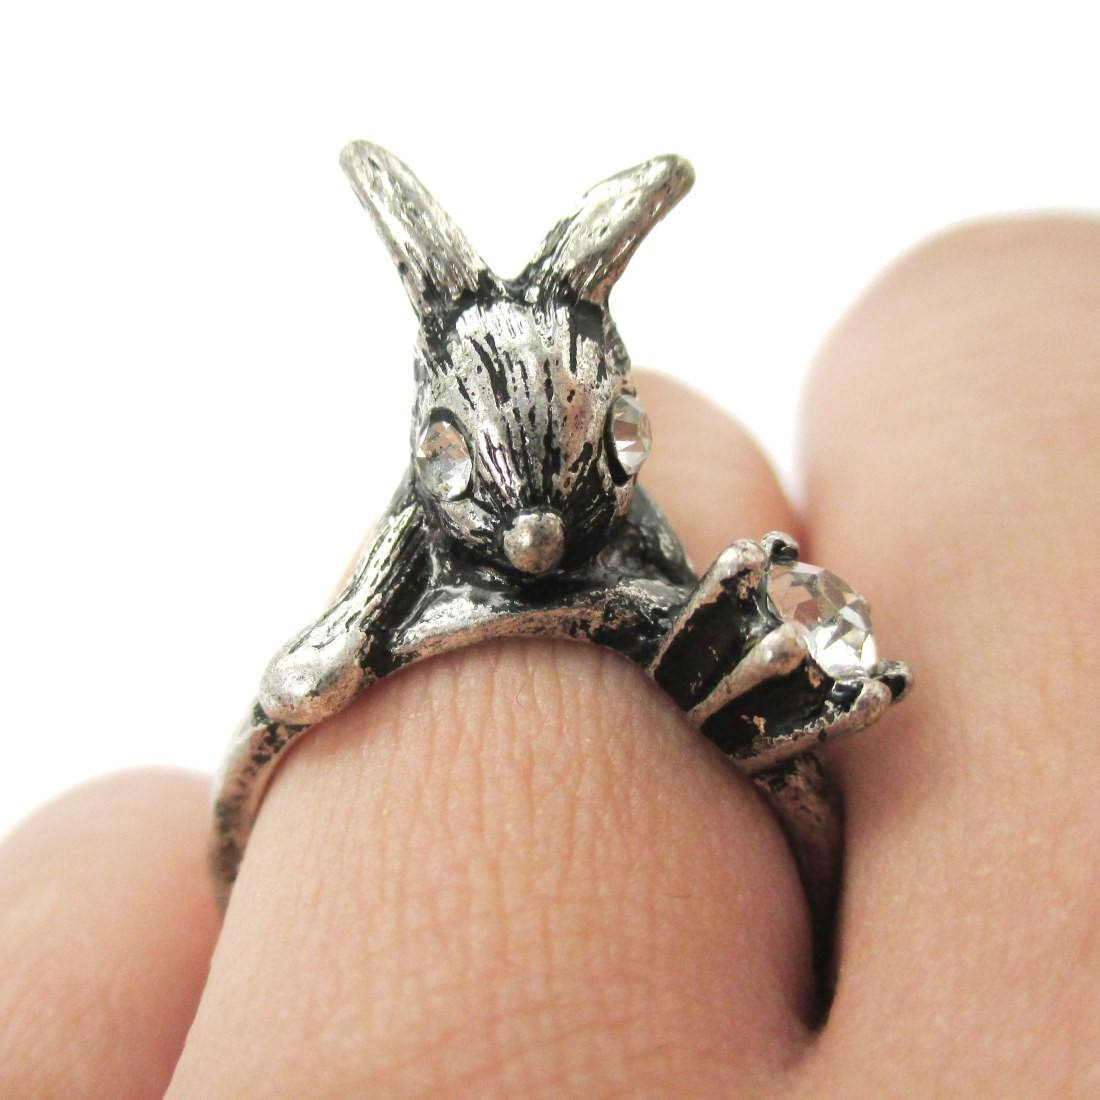 Adorable Bunny Rabbit Shaped Animal Inspired Ring with Rhinestones